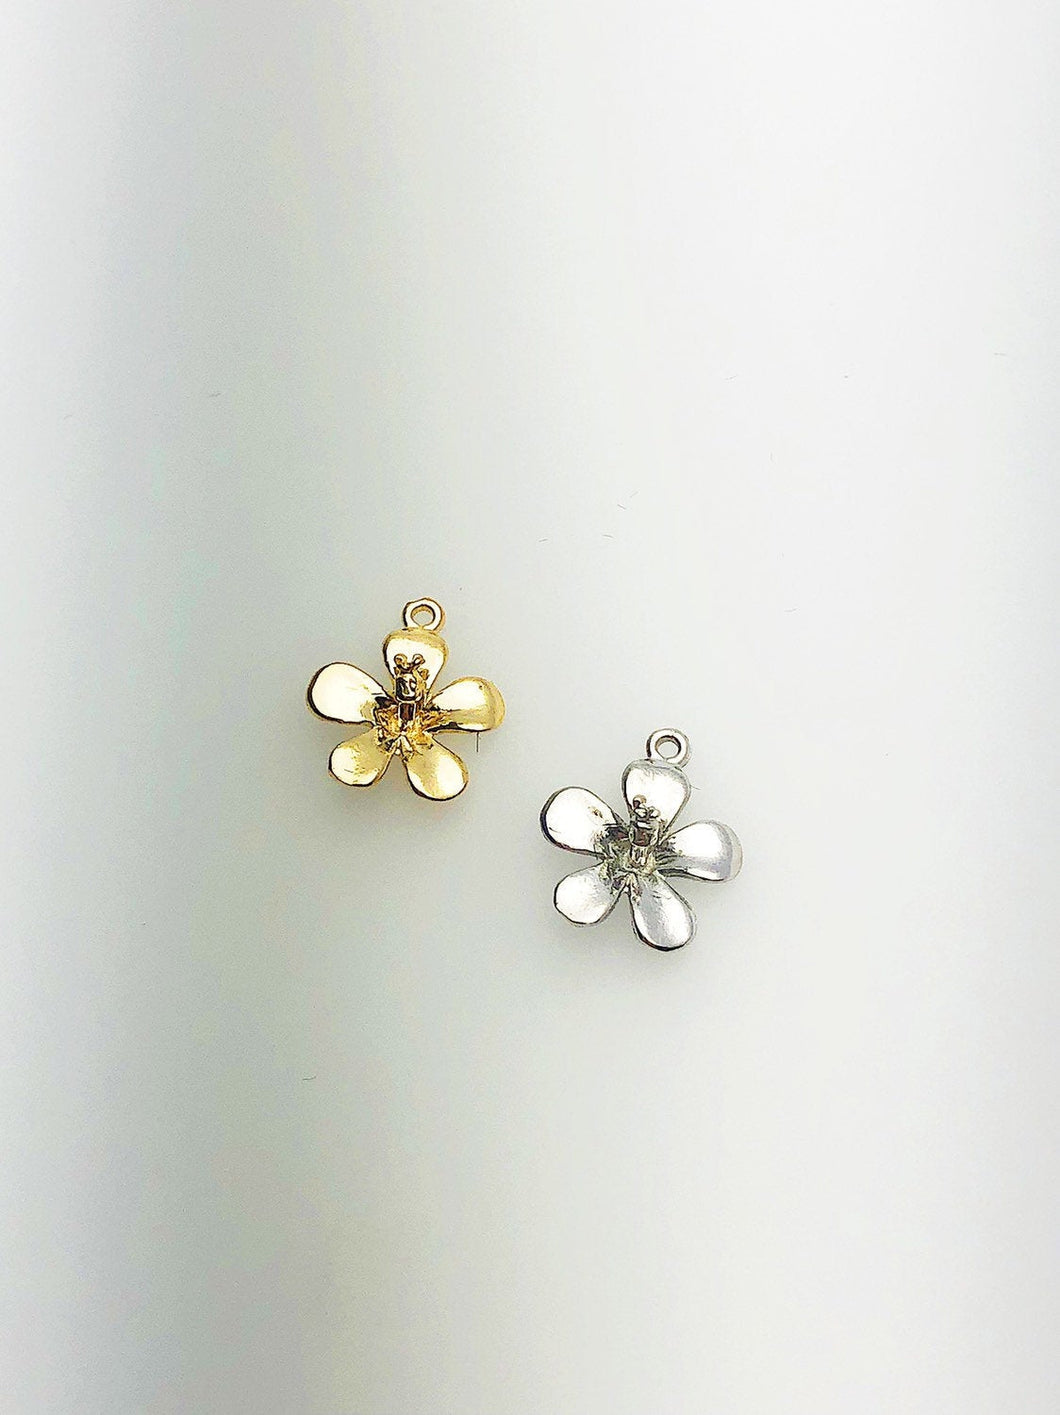 14K Solid Gold Flower Charm w/ Ring, 8.4x9.9mm, Made in USA (L-5)